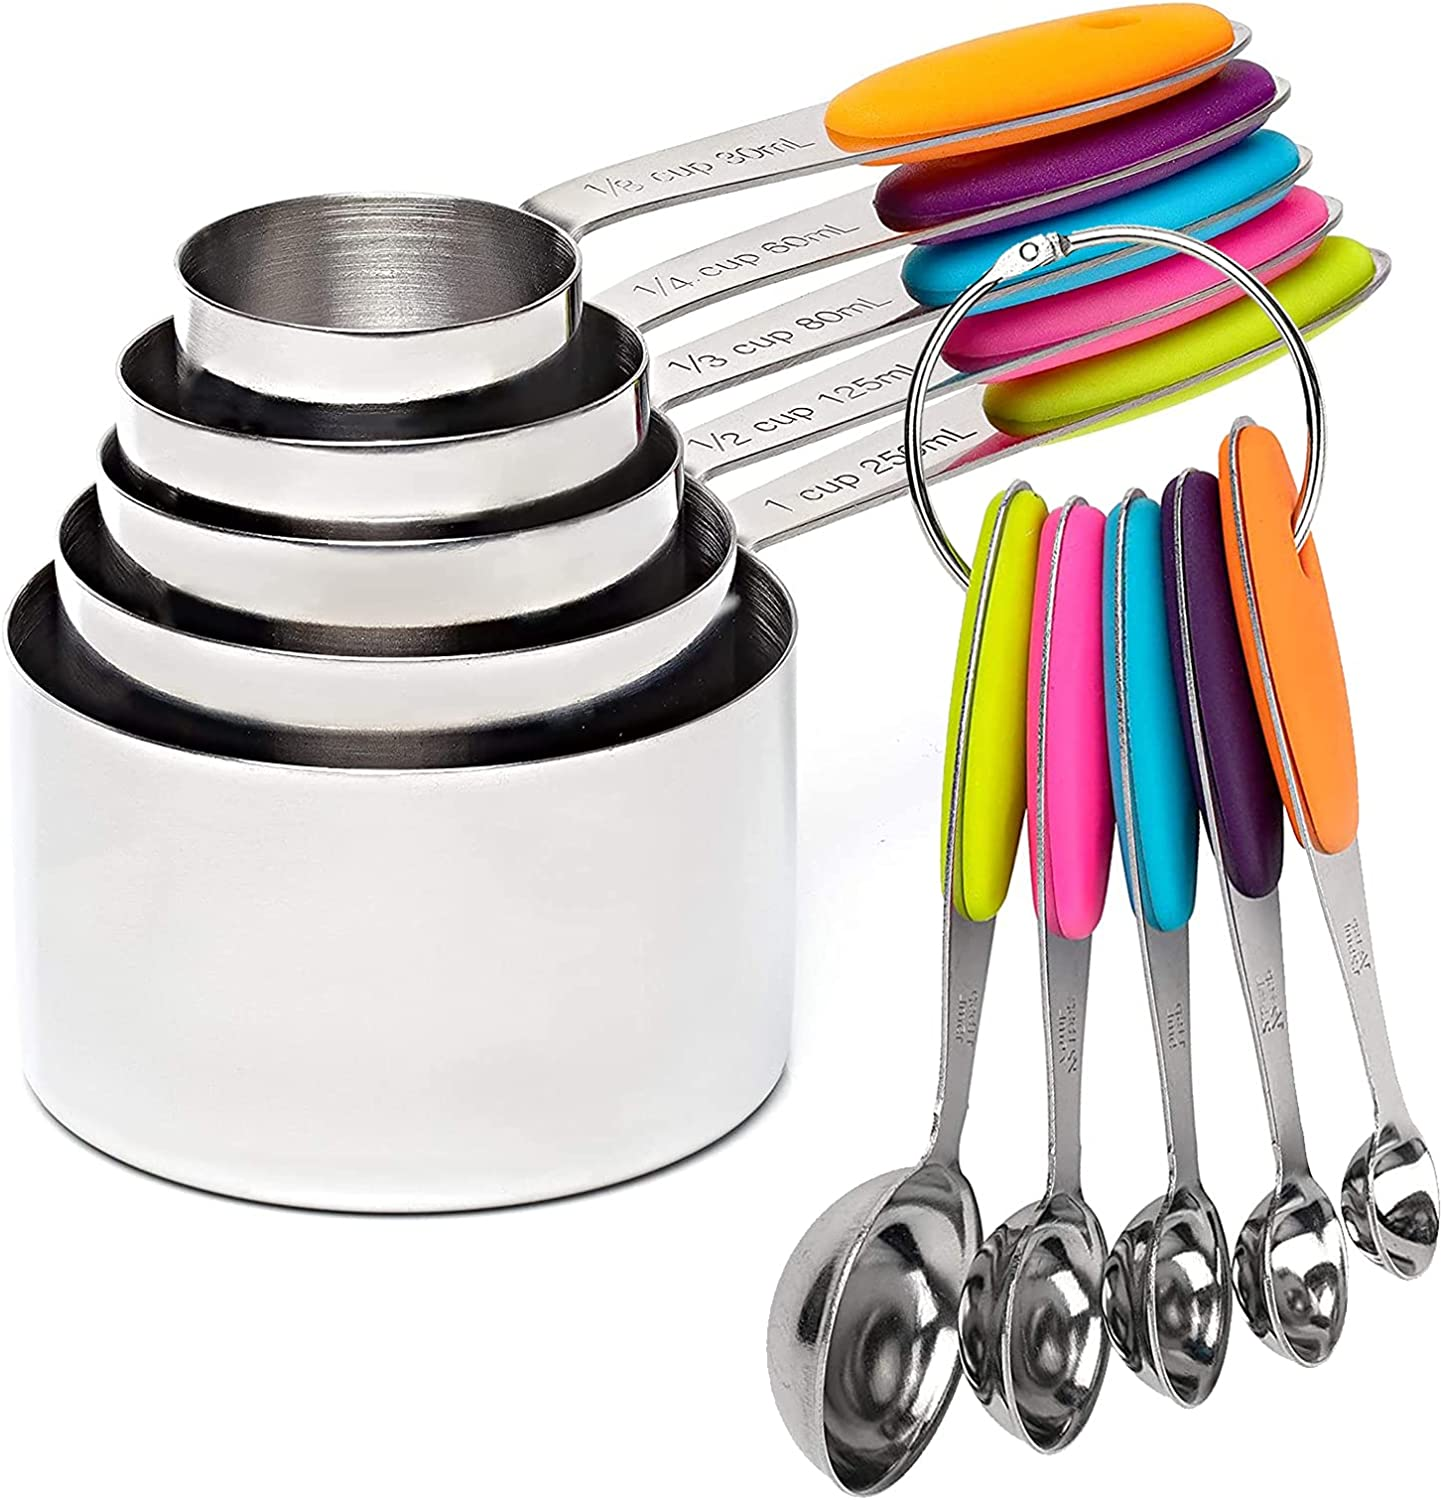 VOJACO Measuring Cups and Measuring Spoons, Measuring Cups and Spoons Set of 10 Pieces, Stainless Steel Measuring Cup Set for Dry Liquid Food, Metal Measure Cups for Kitchen Cooking Baking